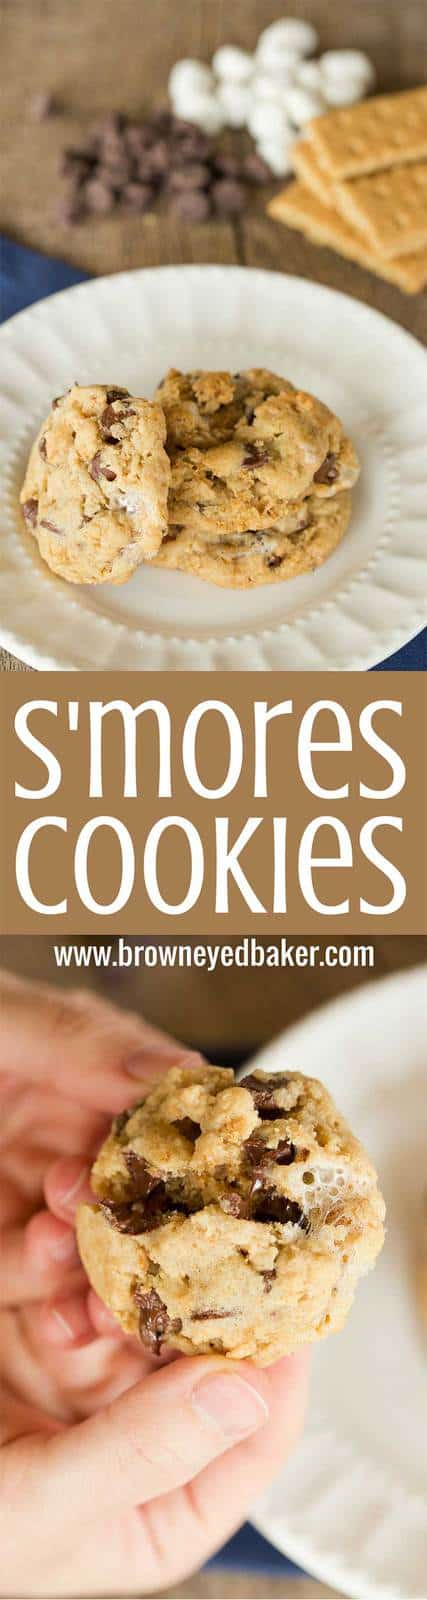 S'mores Cookies made with graham cracker crumbs, mini marshmallows and milk chocolate chips!   browneyedbaker.com